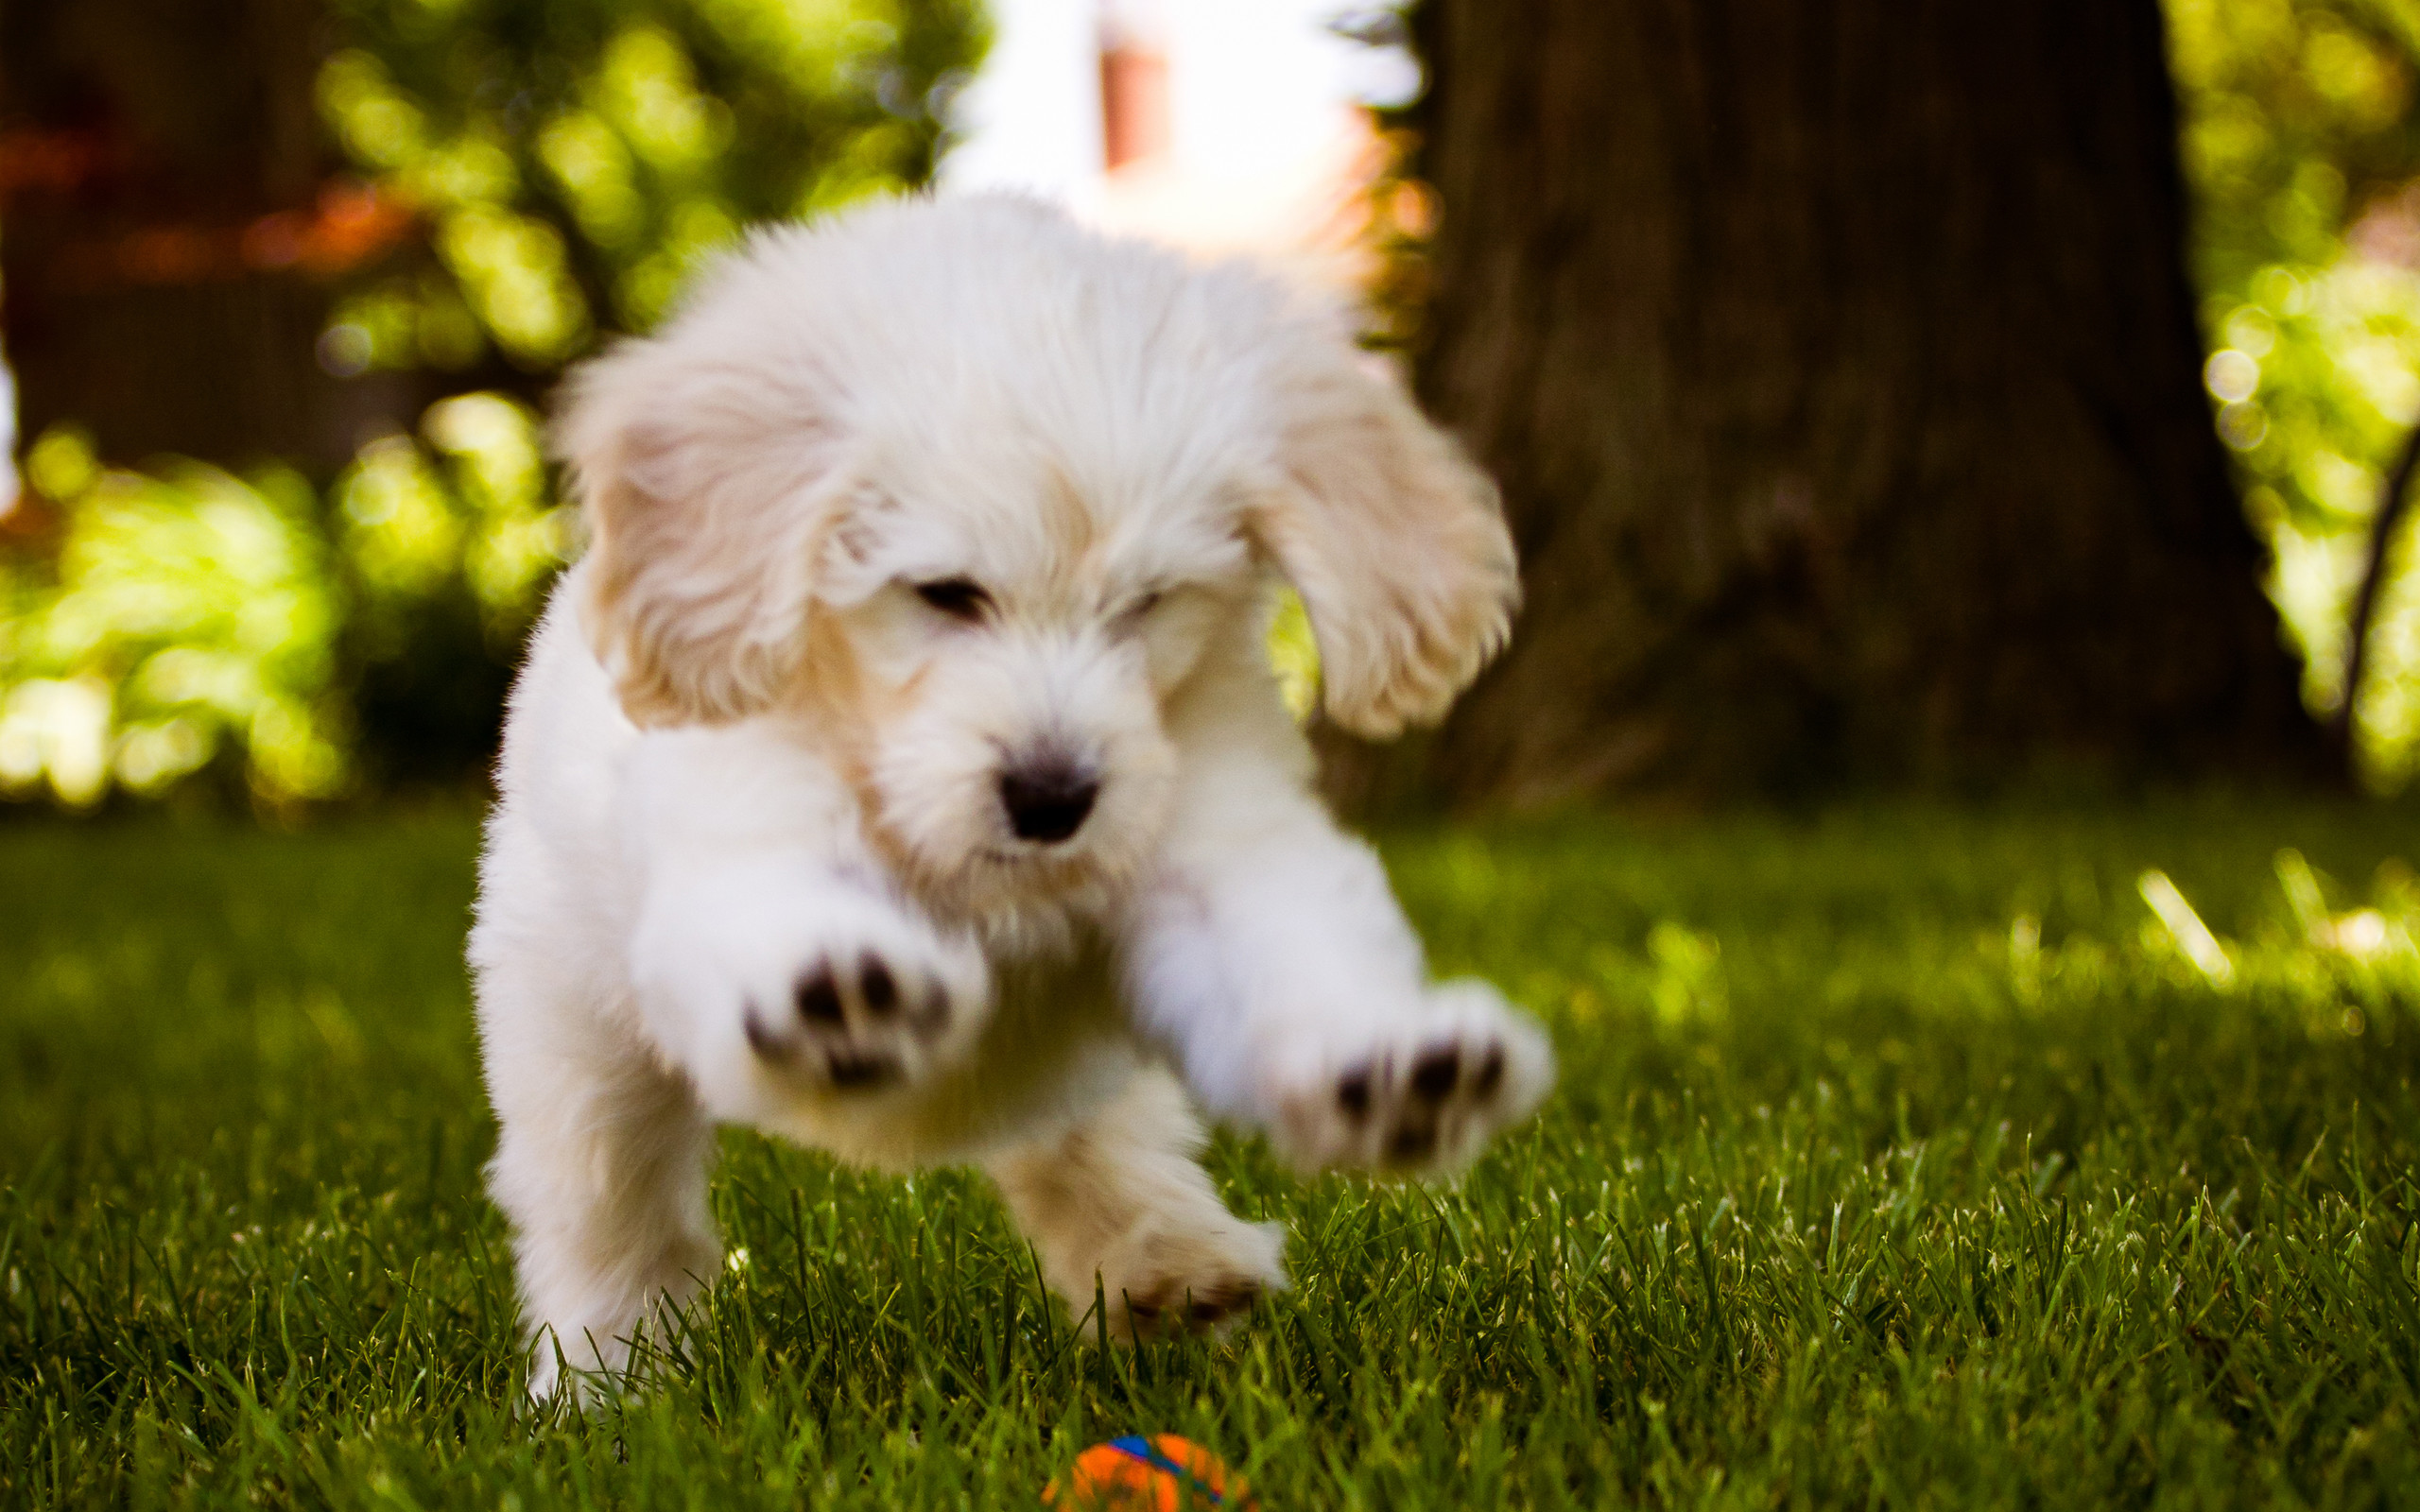 2560x1600 Collection of Cute Dog Desktop Backgrounds on HDWallpapers